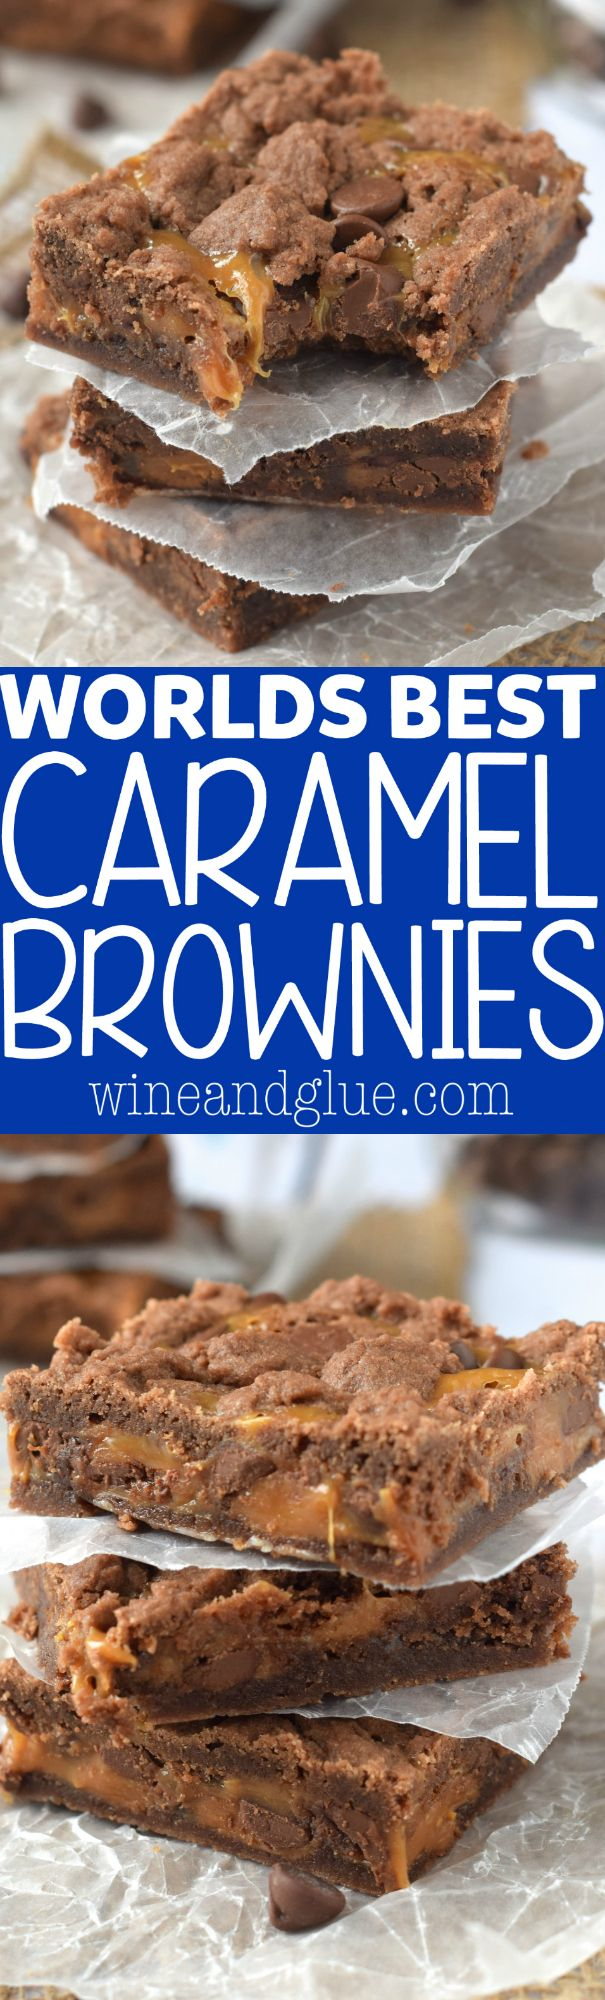 These World's Best Caramel Brownies are SUPER EASY to make and everyone ALWAYS asks for the recipe! Addictive!::